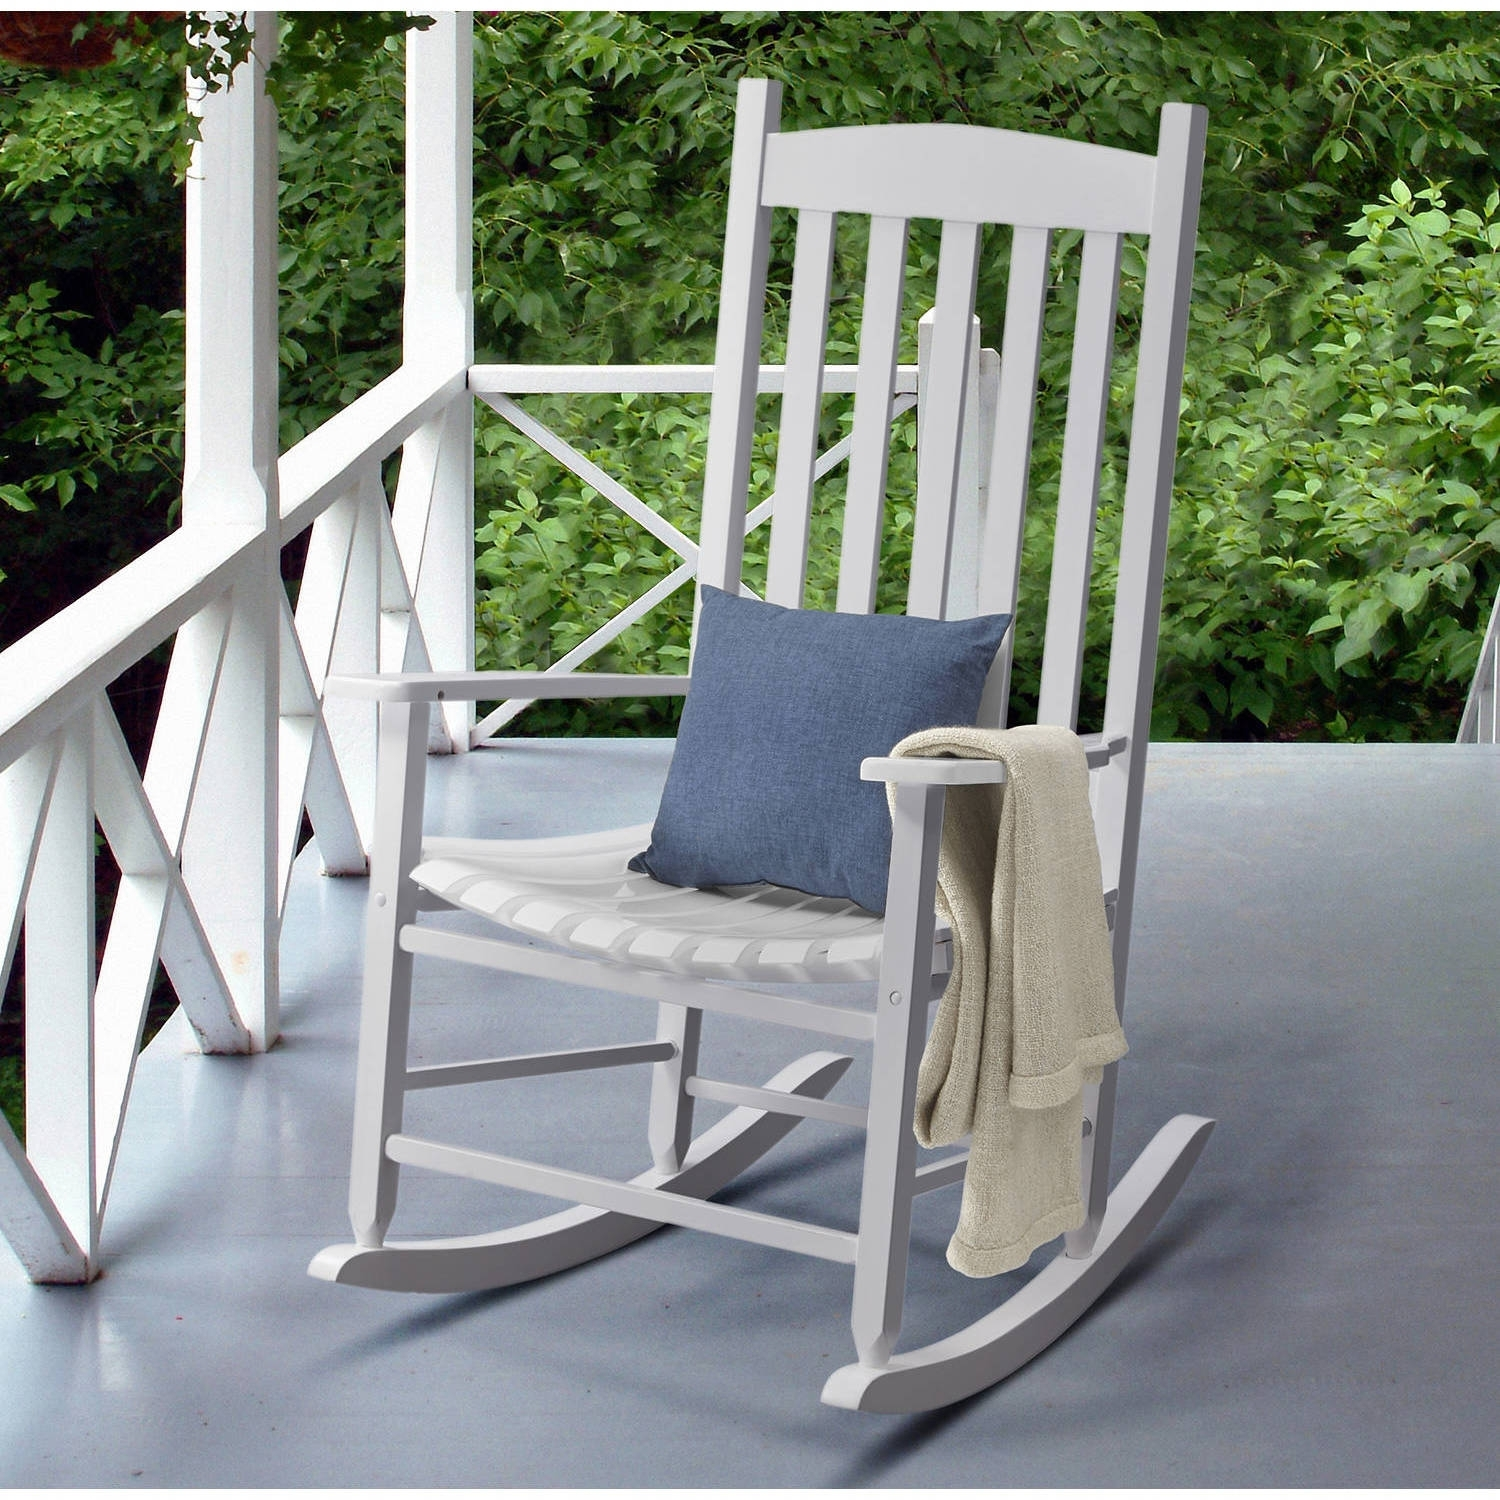 Mainstays Jefferson Outdoor Wrought Iron Porch Rocking Chair Regarding Patio Rocking Chairs (View 10 of 15)